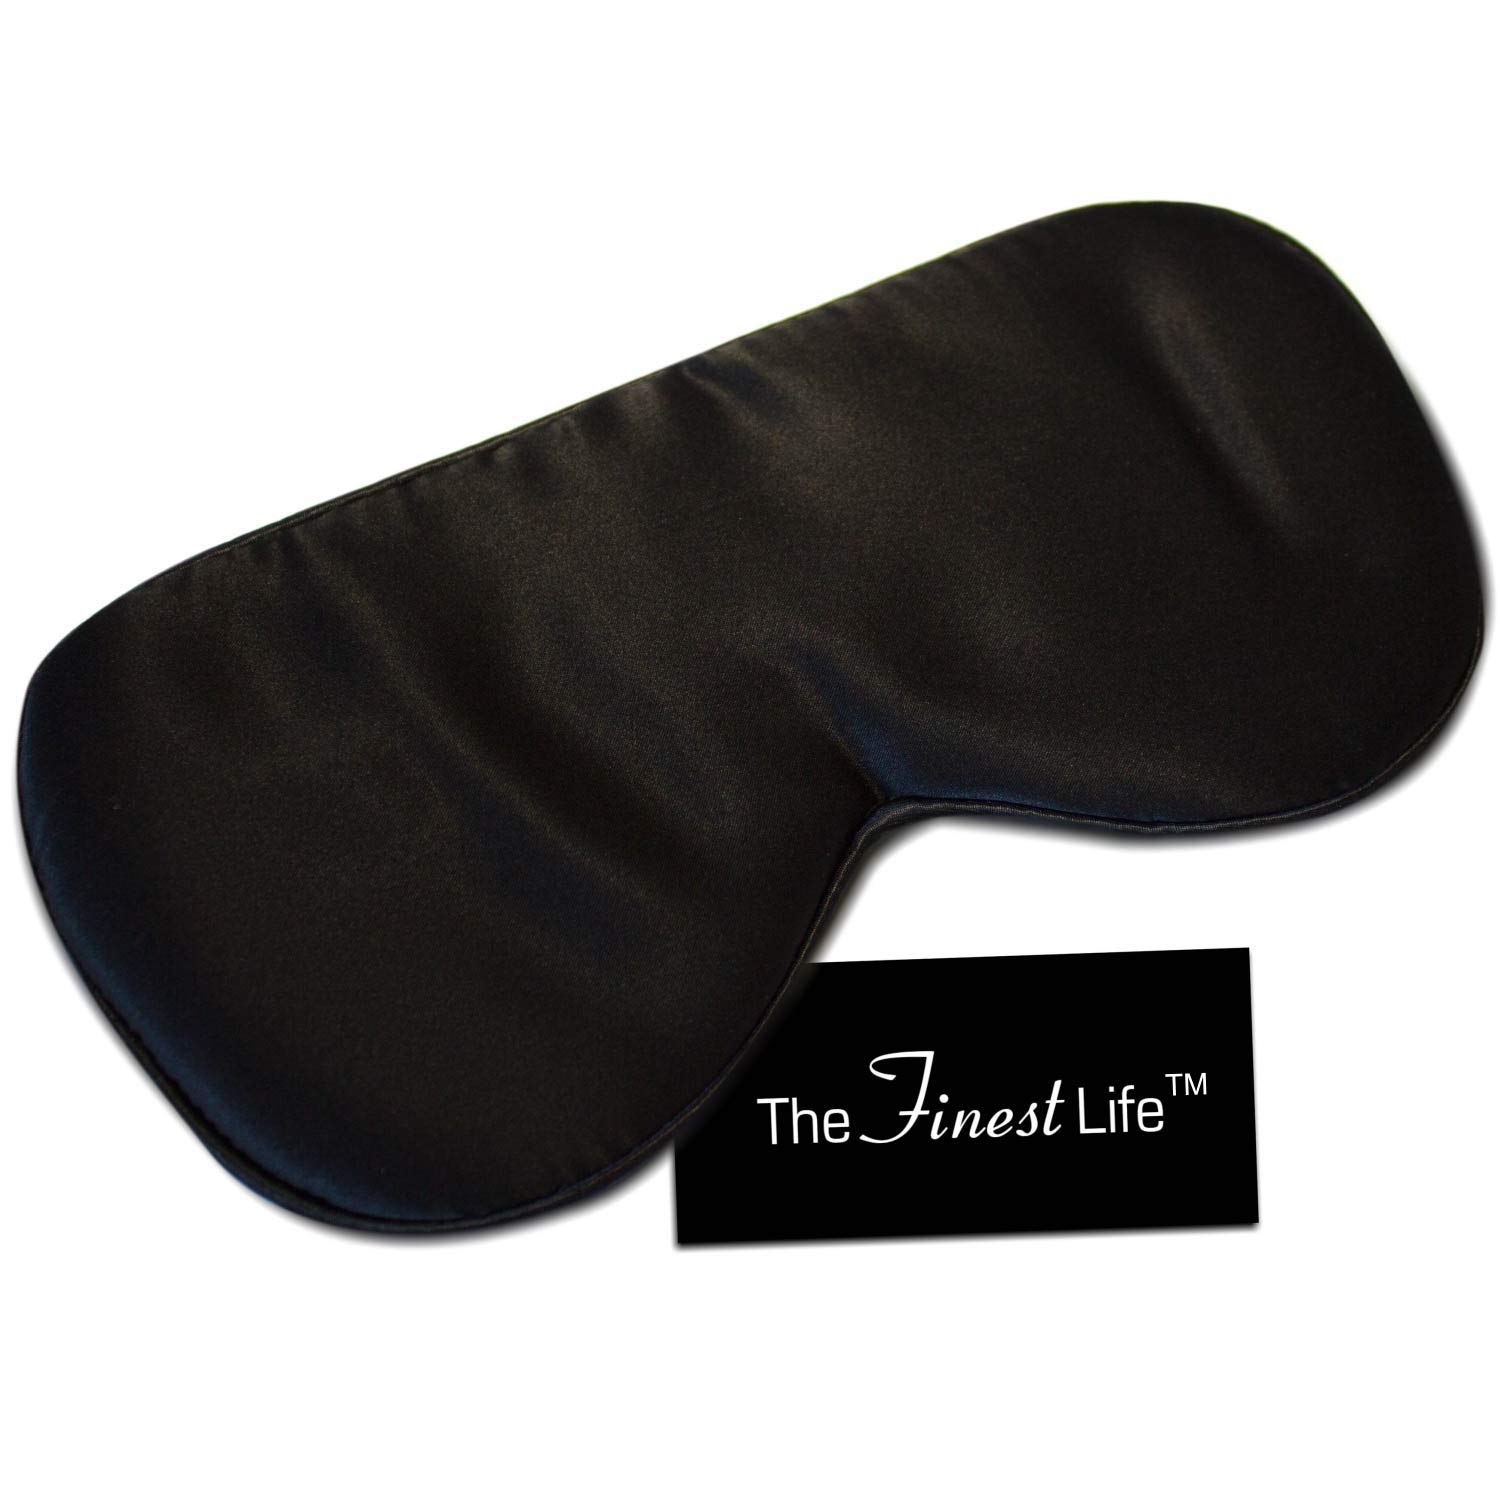 The Finest Life™ Natural Silk Sleep Mask Great for Sleep, Premium Eye Mask with Adjustable Strap, Sleeping Aid, Blindfold, Perfect for Women, Men, Girls, Boys